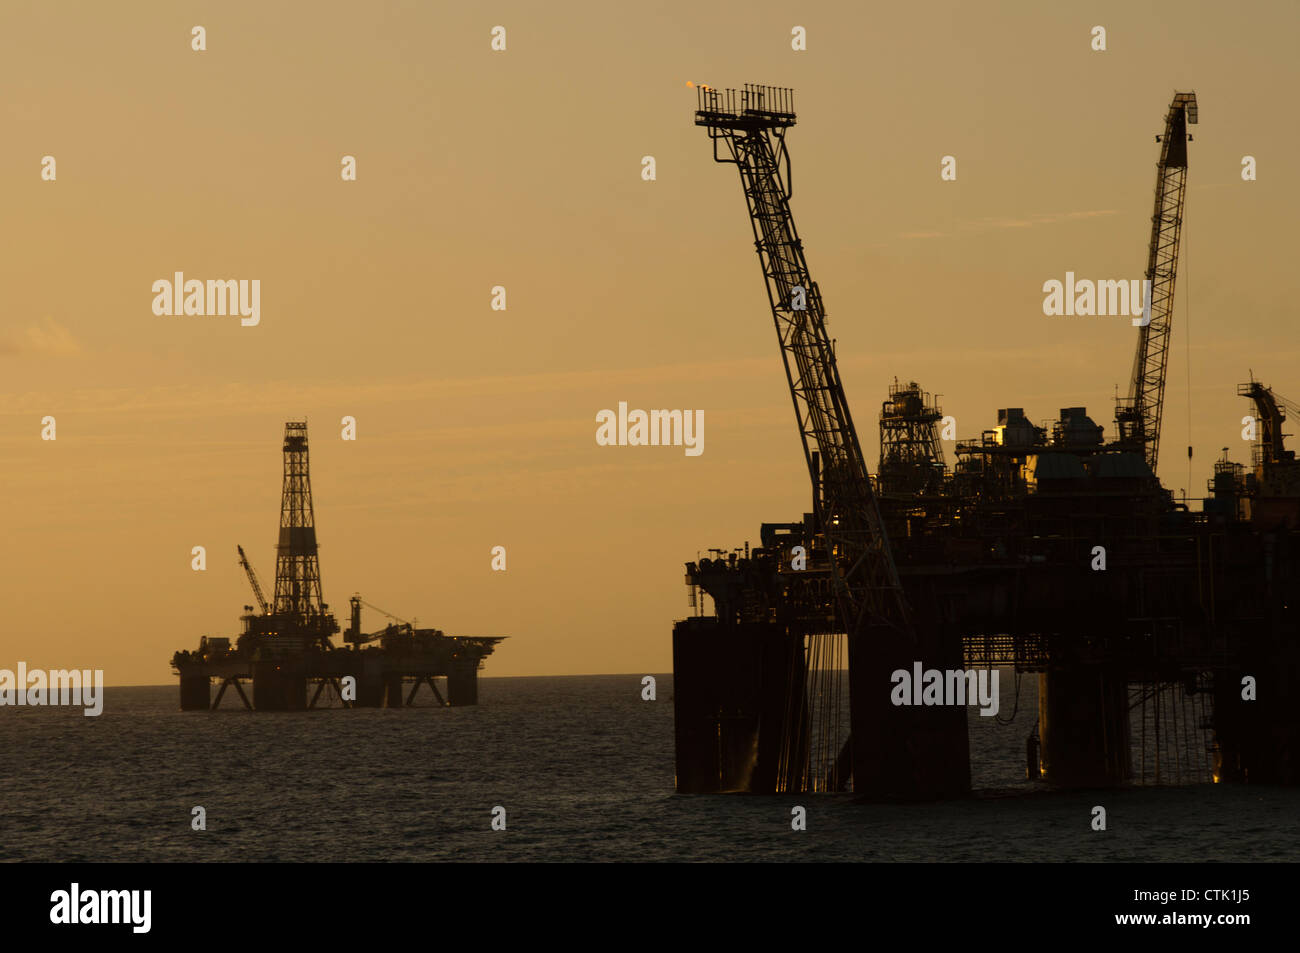 offshore oil rig silhouette during sunset/sunrise time